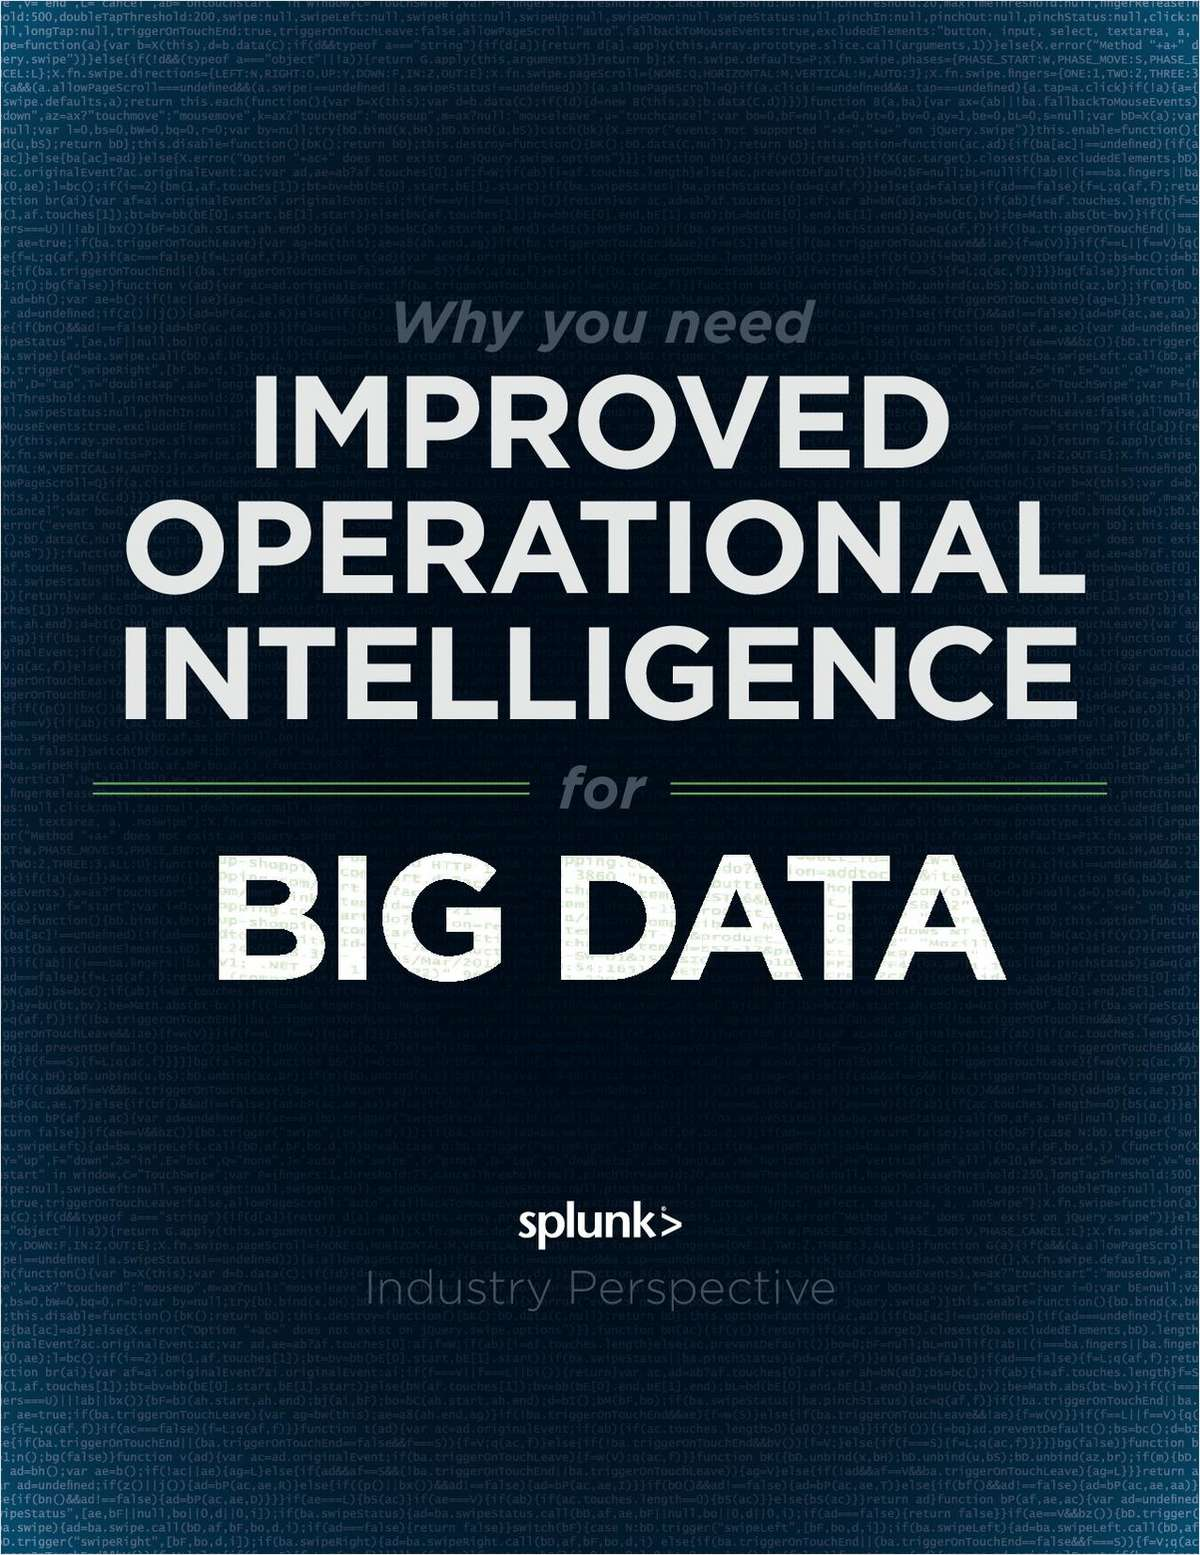 Why You Need Improved Operational Intelligence for Big Data